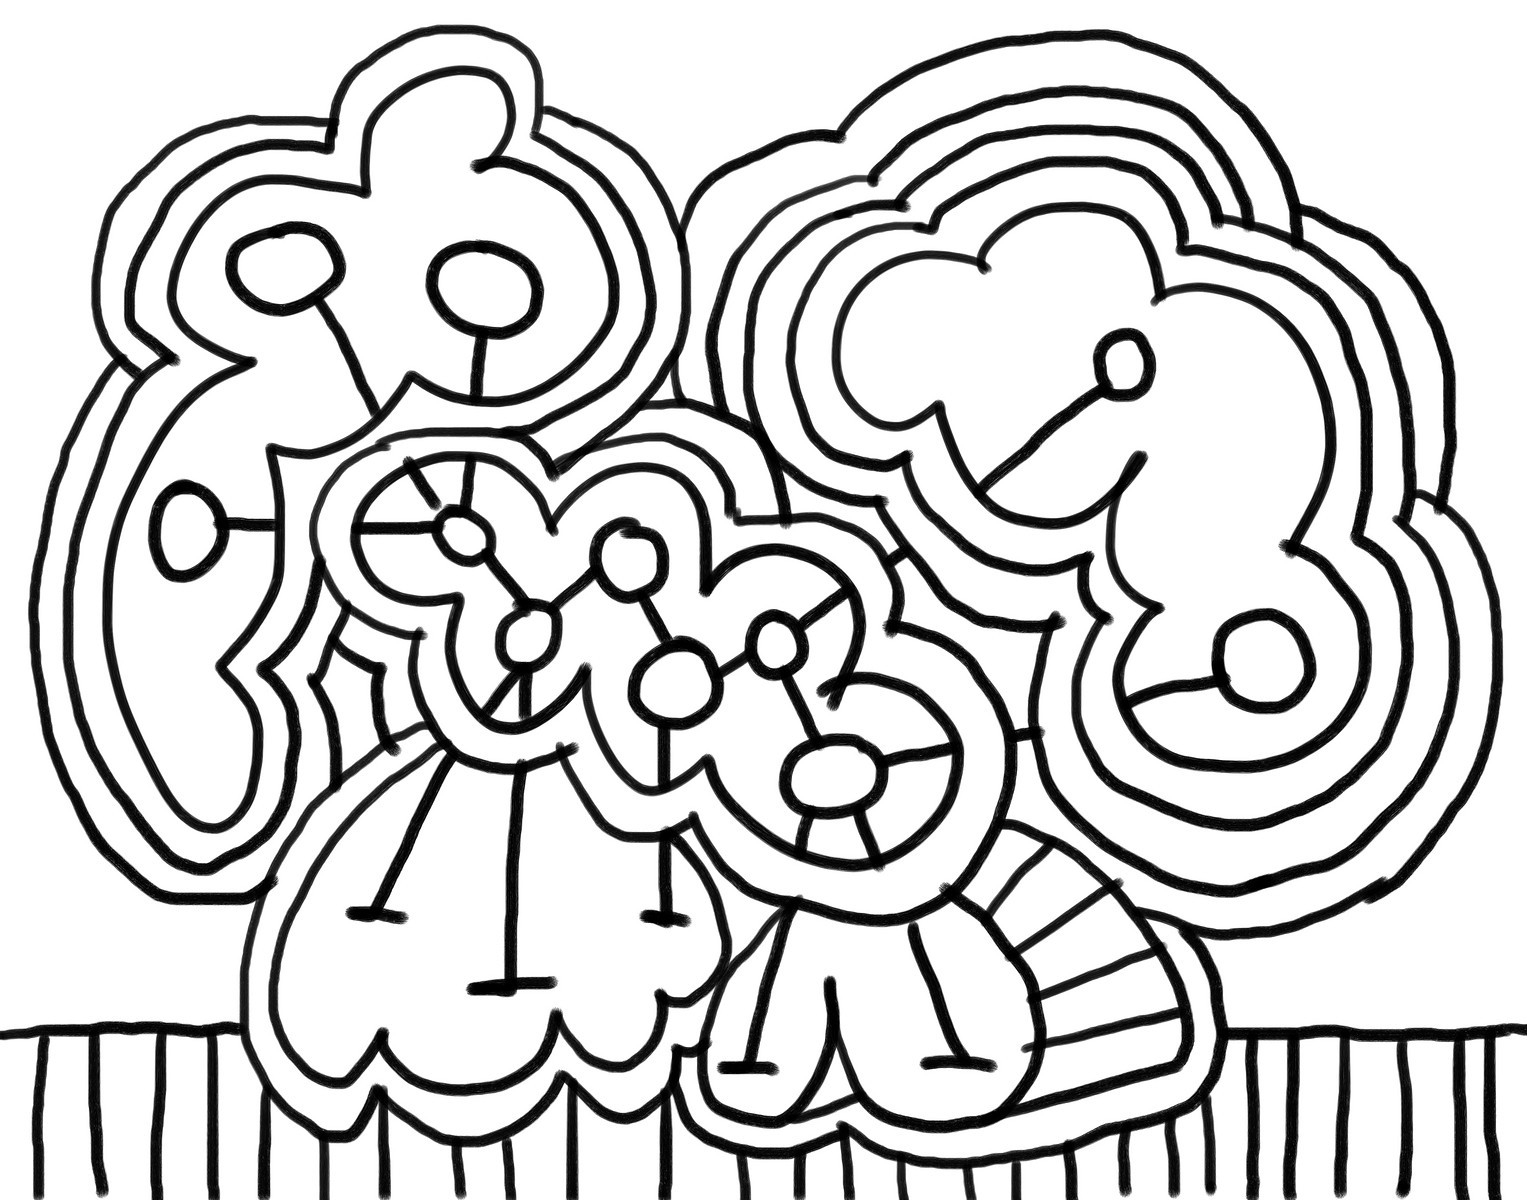 Free Abstract Coloring Pages Seekliza Printable Of Snowflake Coloring Pages for Adults Coloring Pages Inspiring Printable